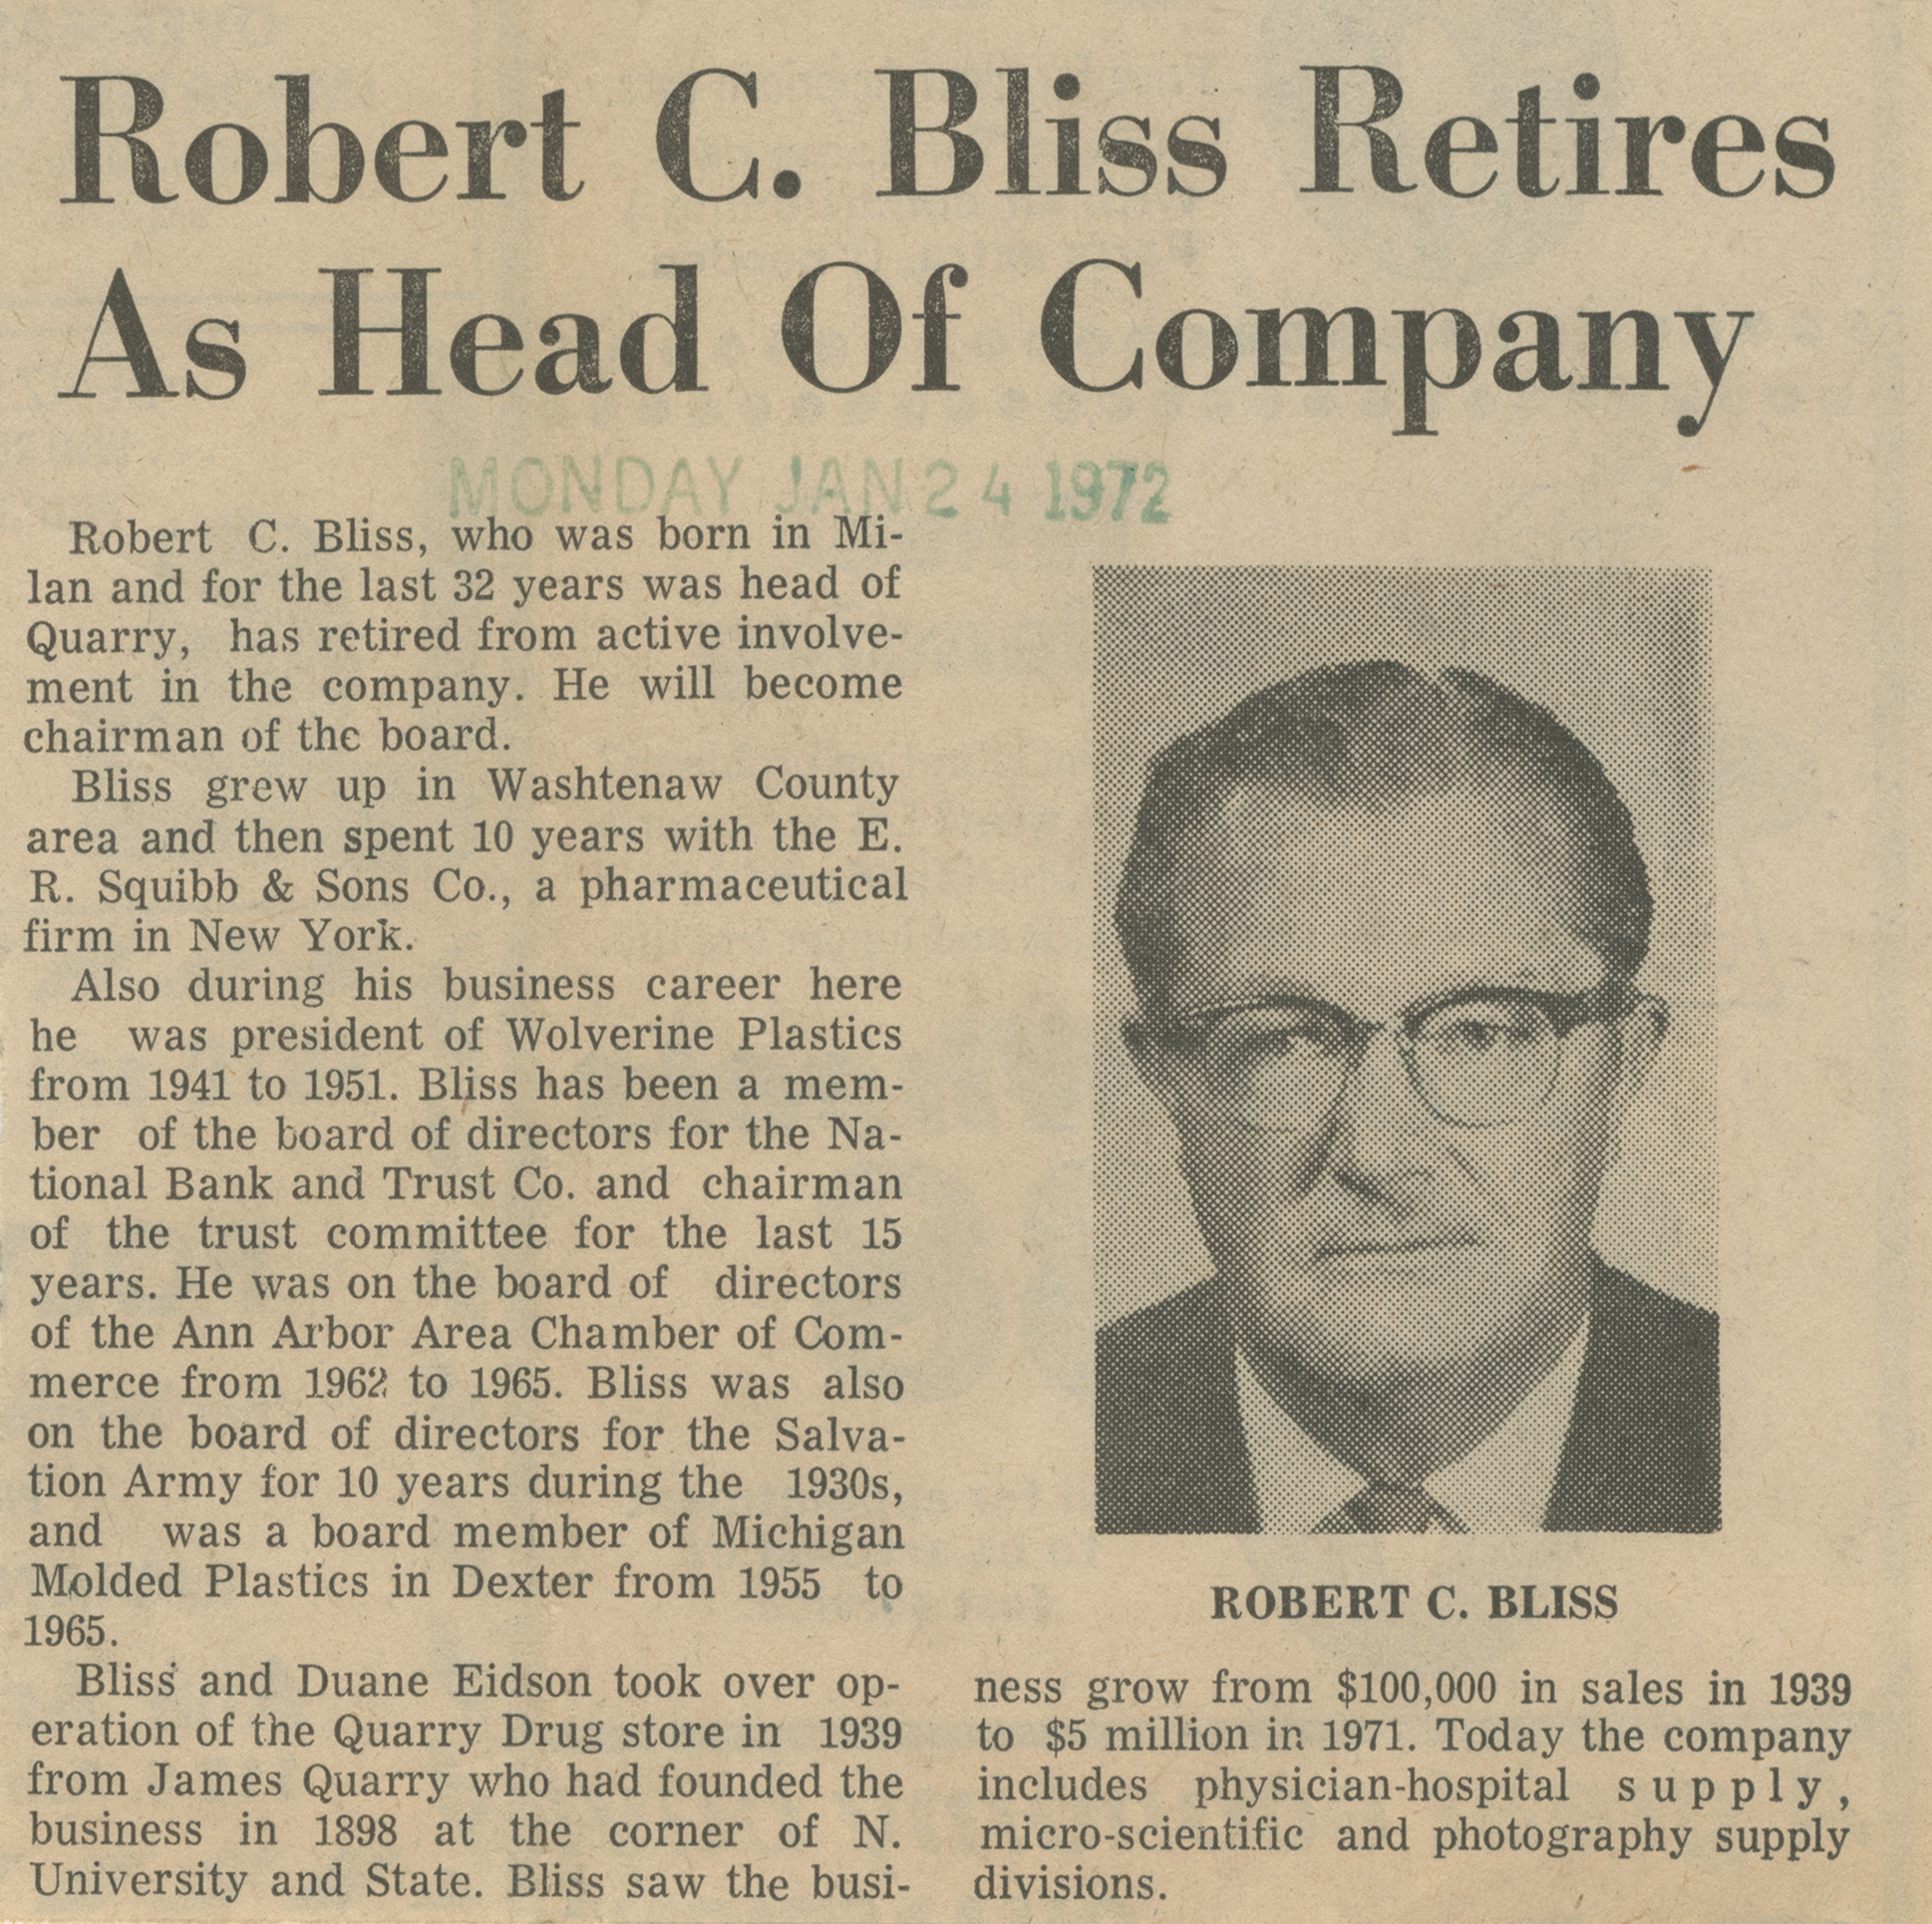 Robert C. Bliss Retires As Head Of Company image